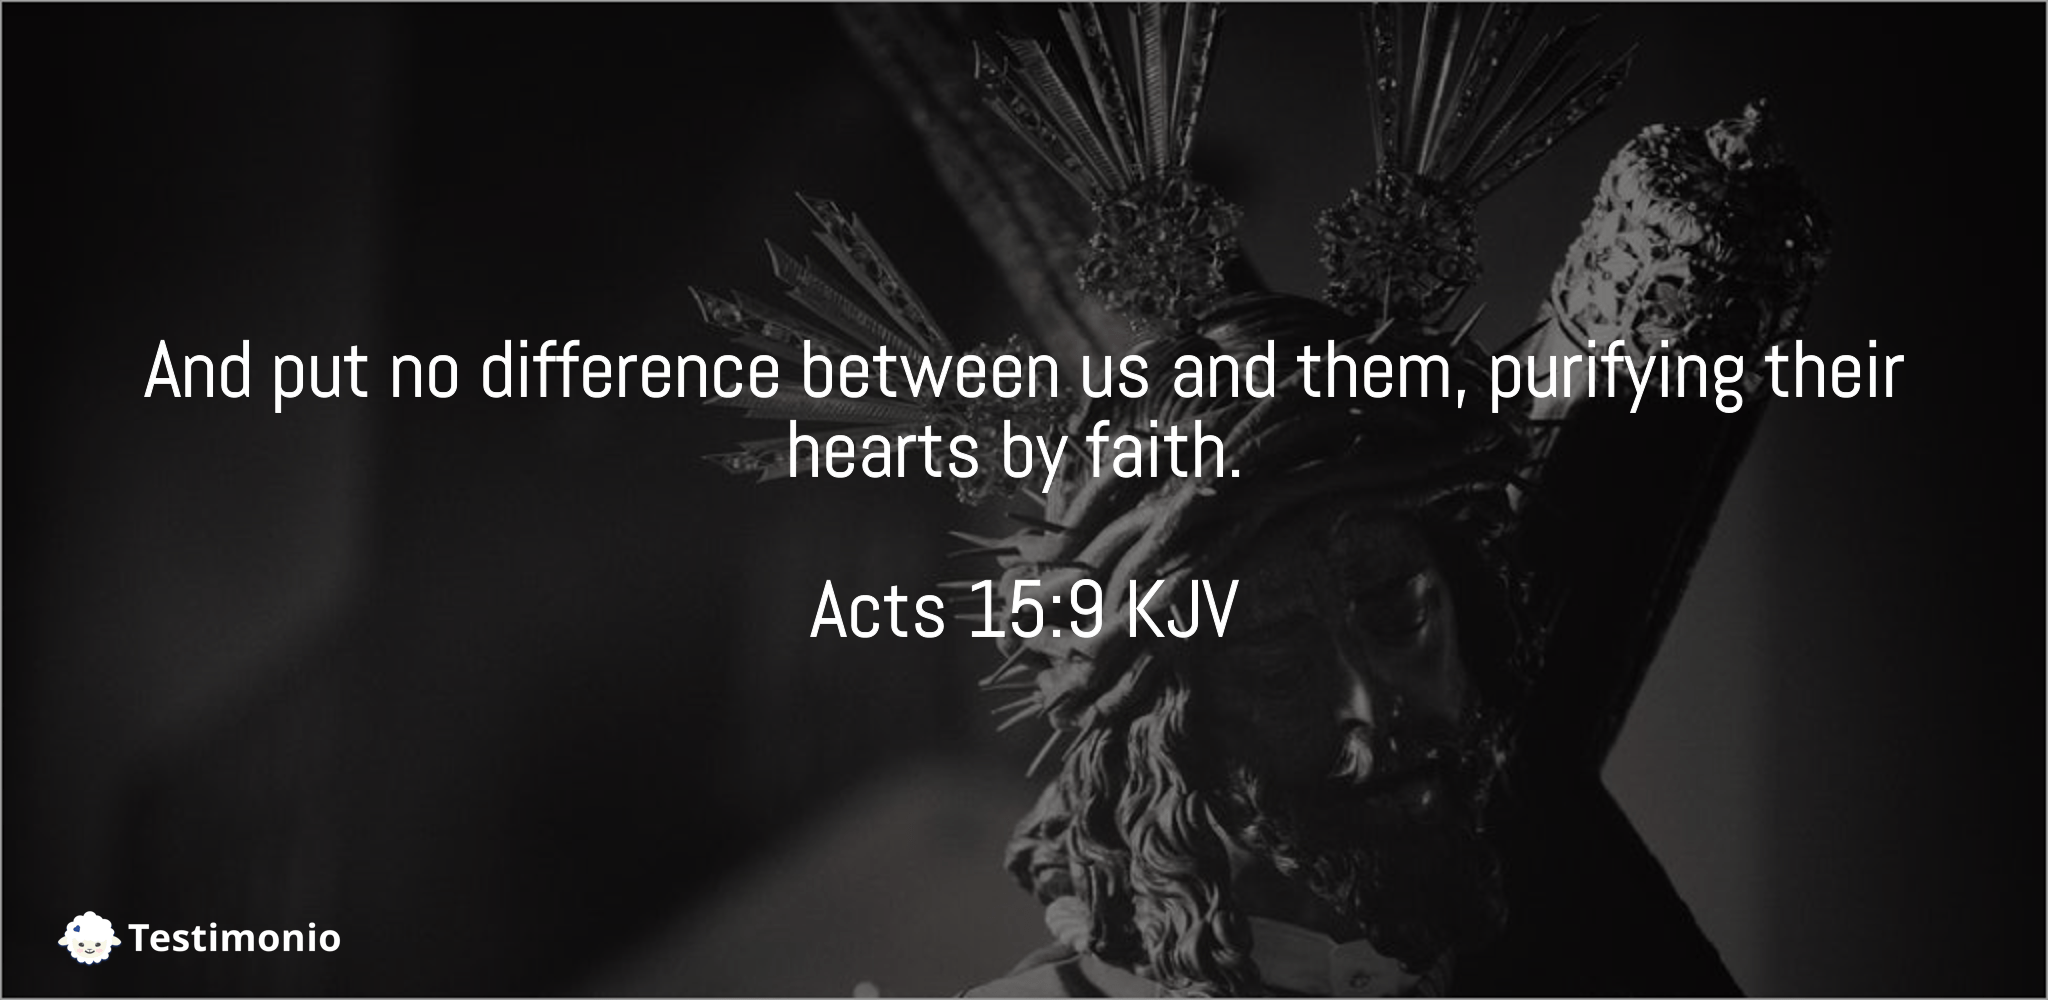 Acts 15:9